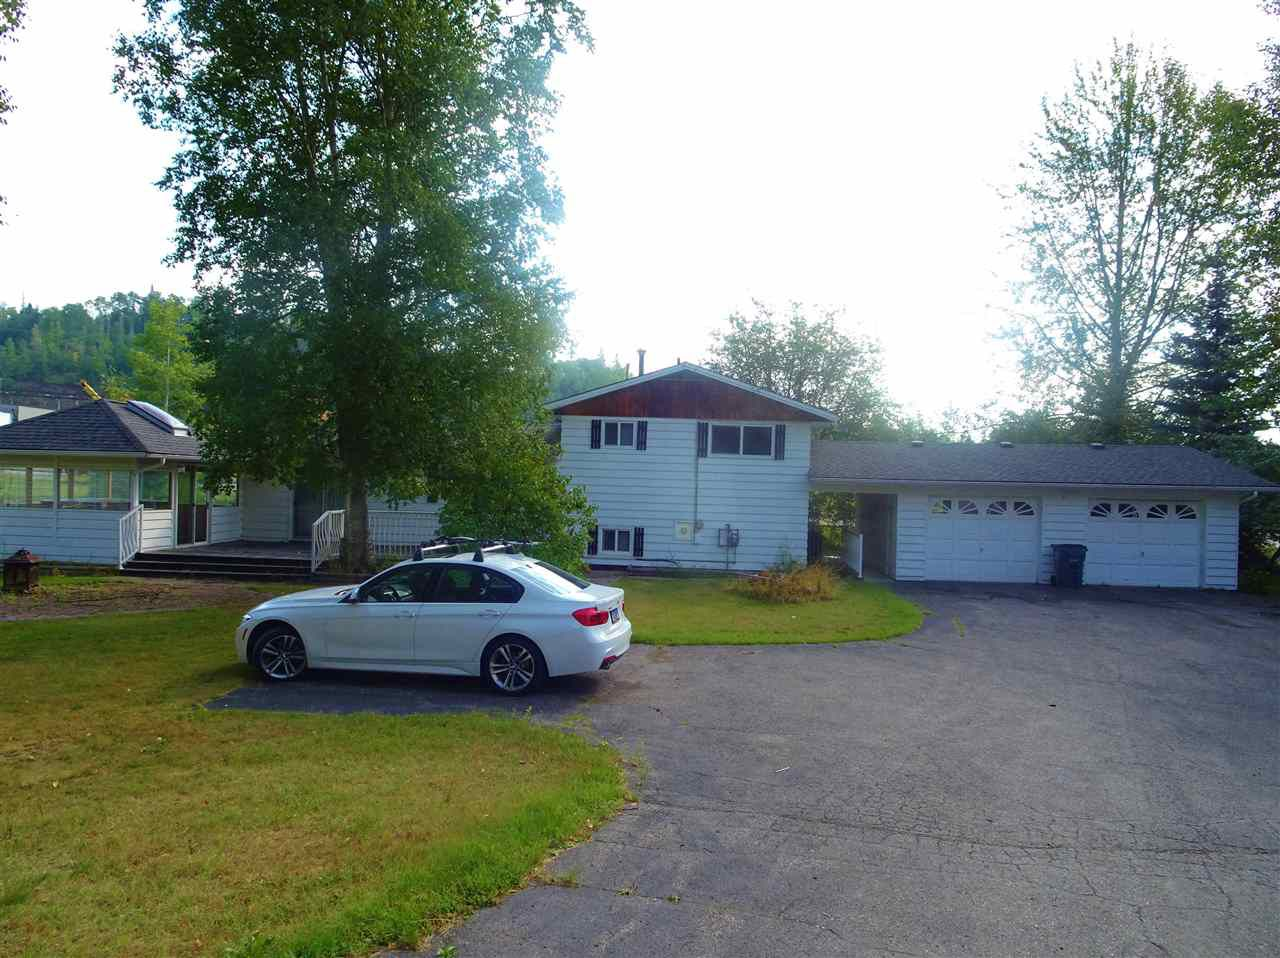 """Main Photo: 4680 RANDLE Road in Prince George: Hart Highway House for sale in """"HART HIGHWAY"""" (PG City North (Zone 73))  : MLS®# R2199294"""